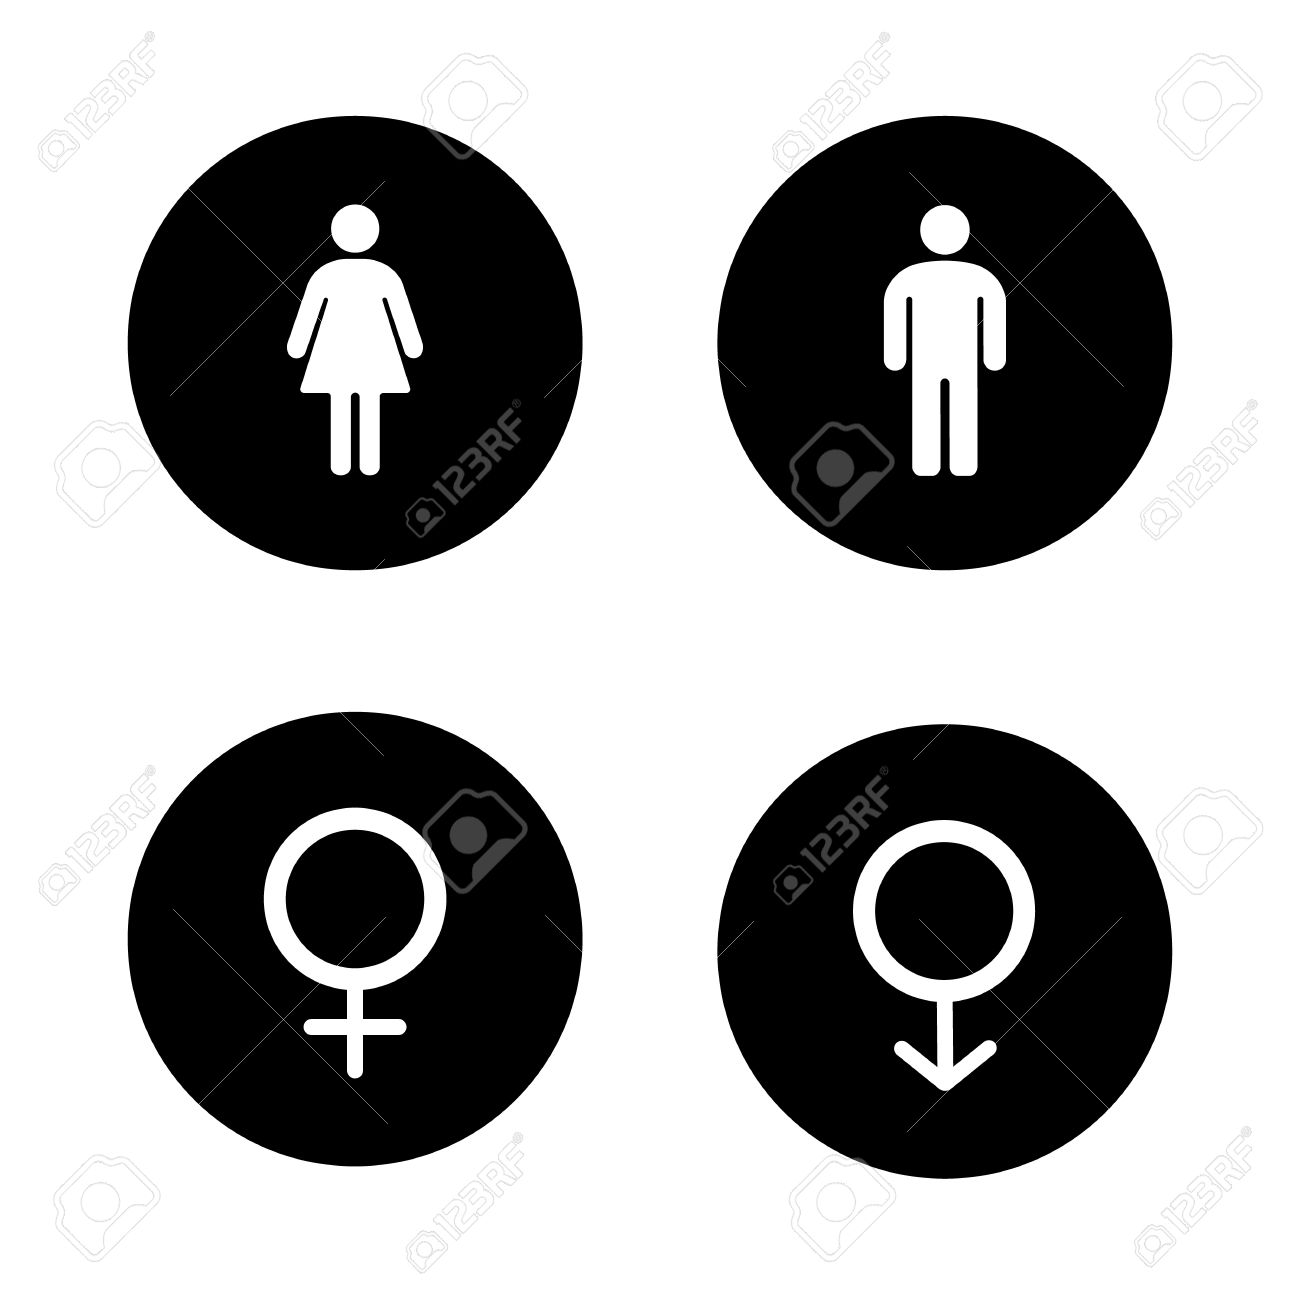 Gender Round Symbol Male And Female Toilet Door Signs Man Woman Body White Silhouettes Illustrations Girl Boy Pictogram